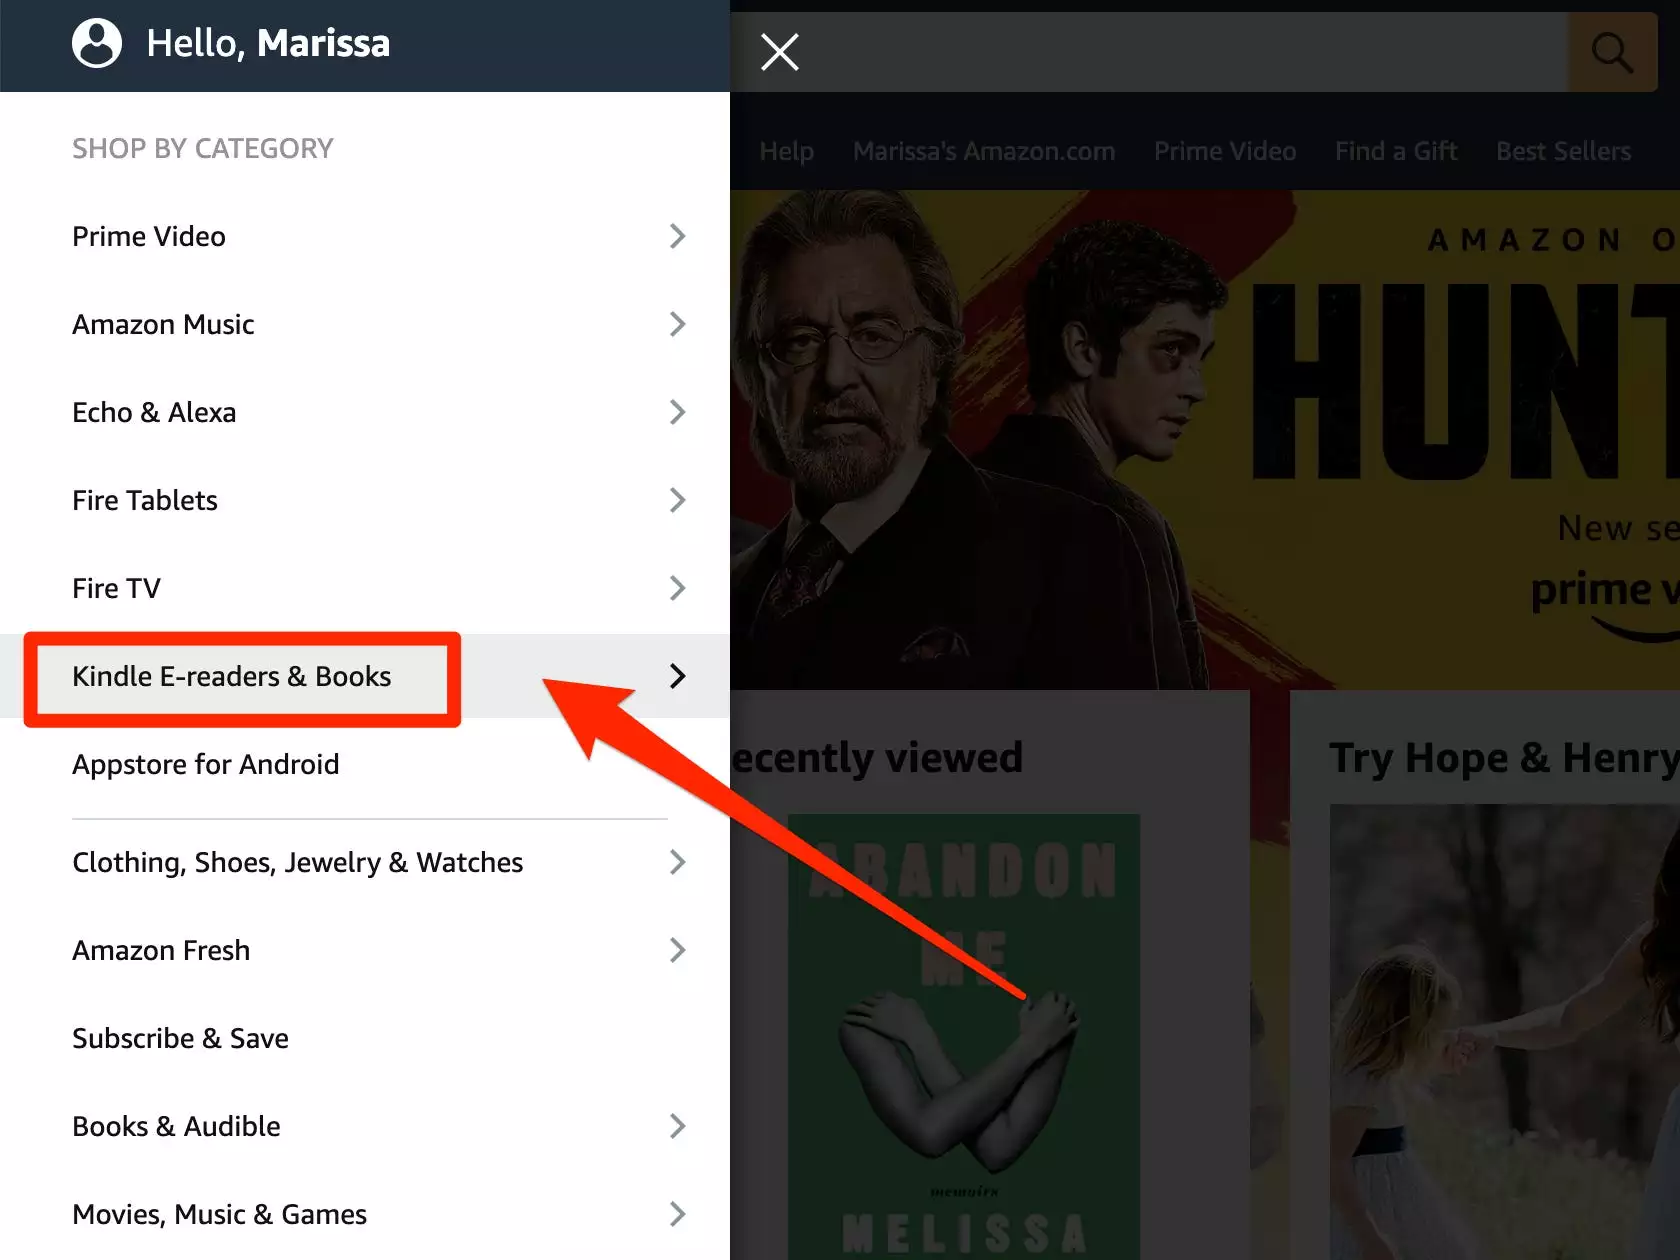 """Step 3: Next, click """"Kindle E-readers & Books"""" below the """"Shop by Category"""" section."""